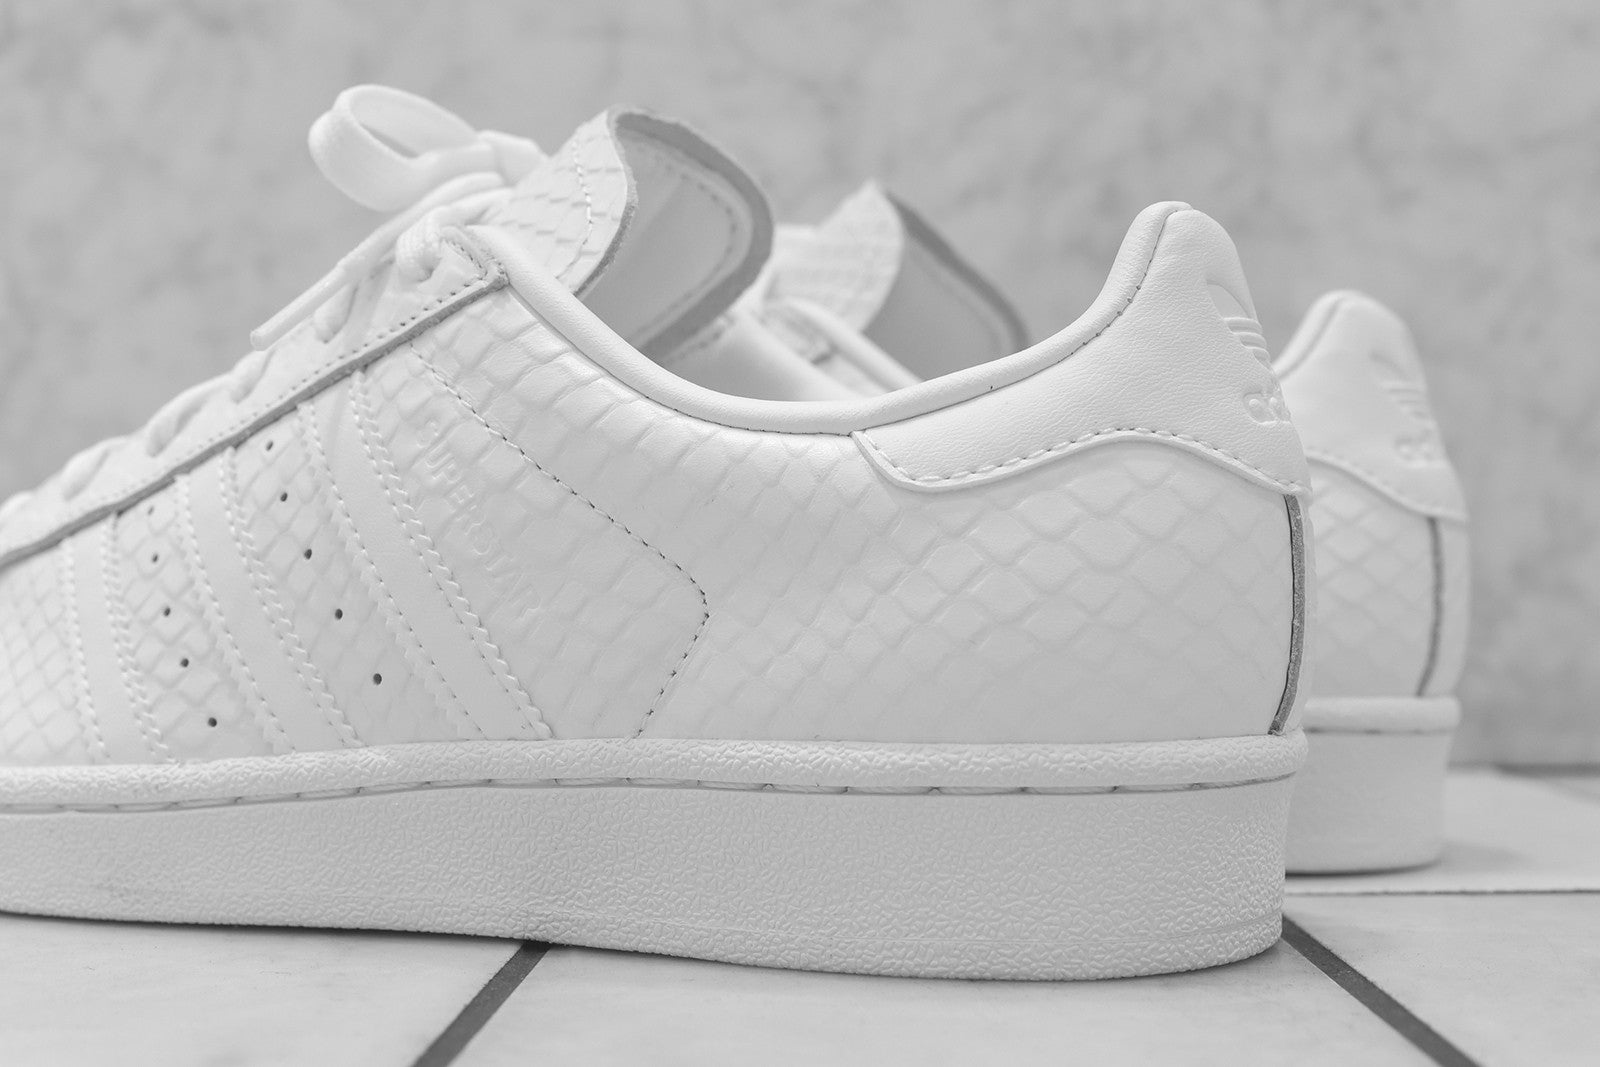 adidas Originals WMNS Superstar Snakeskin - Triple White